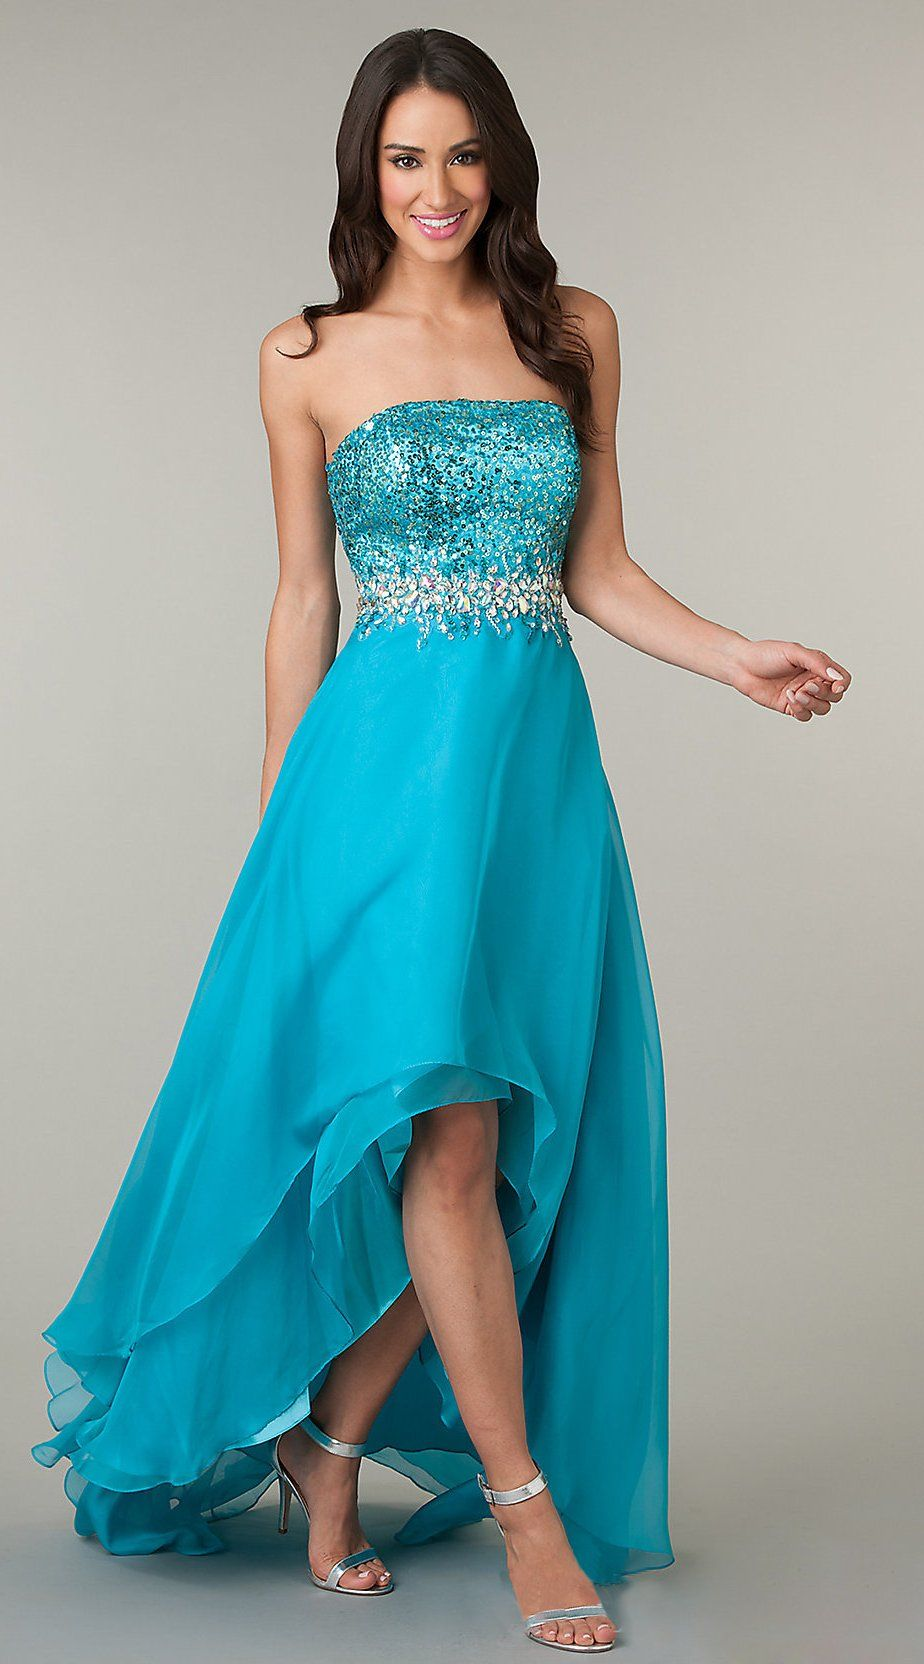 Beautiful High Low Teal Formal Prom Dress Strapless Sequins ...